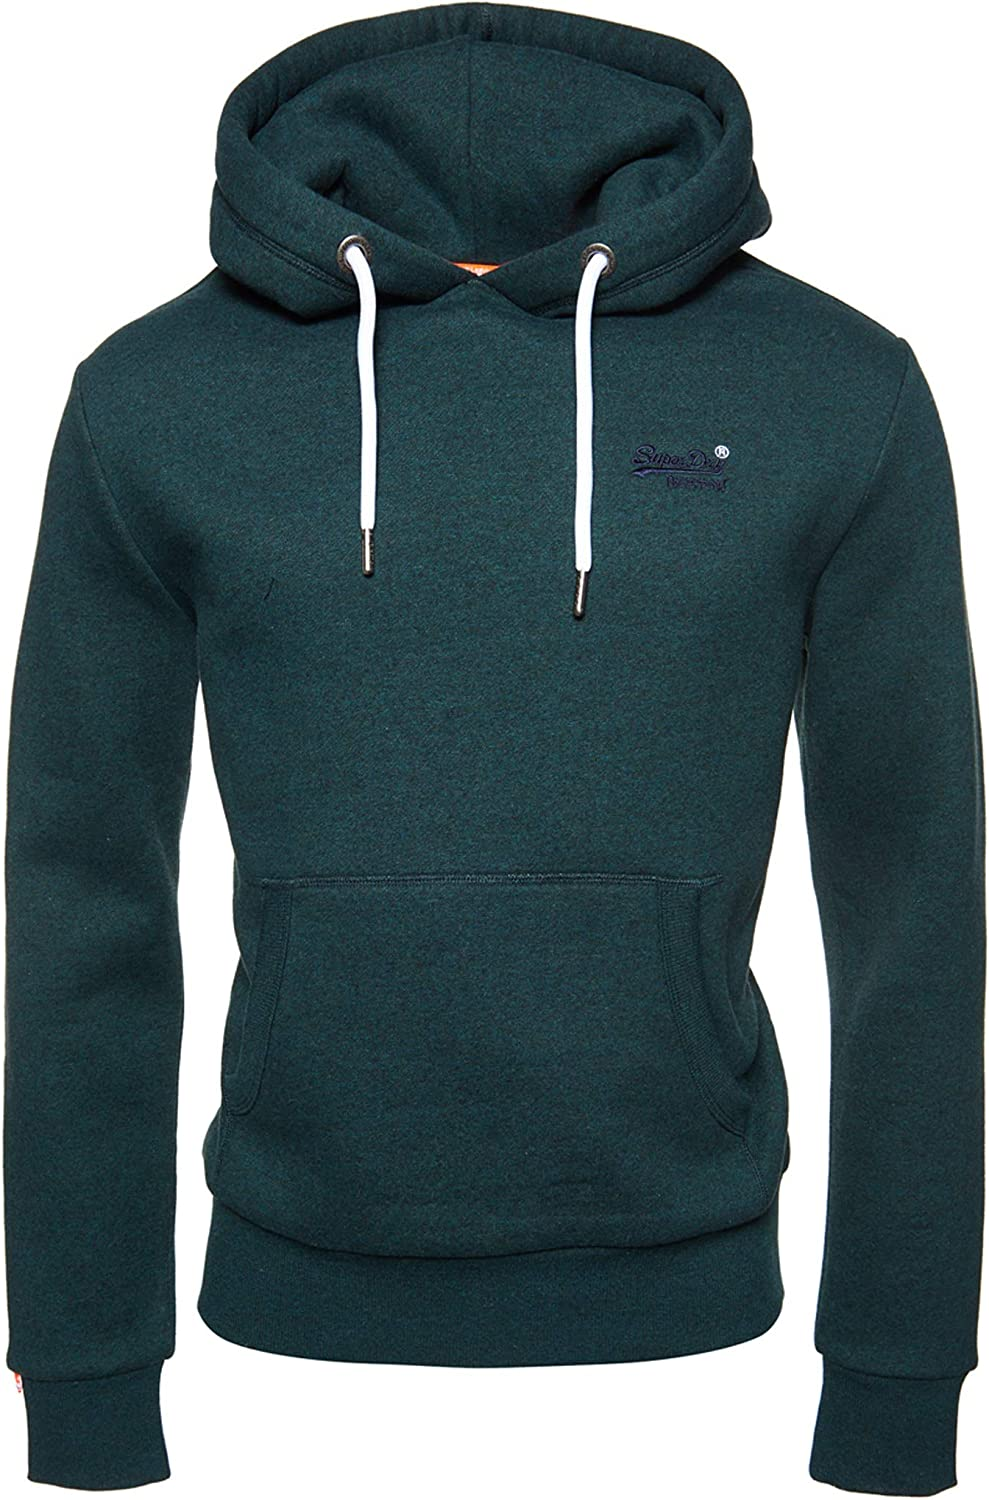 Popular brand Superdry OFFicial mail order Orange Label Hoodie Classic